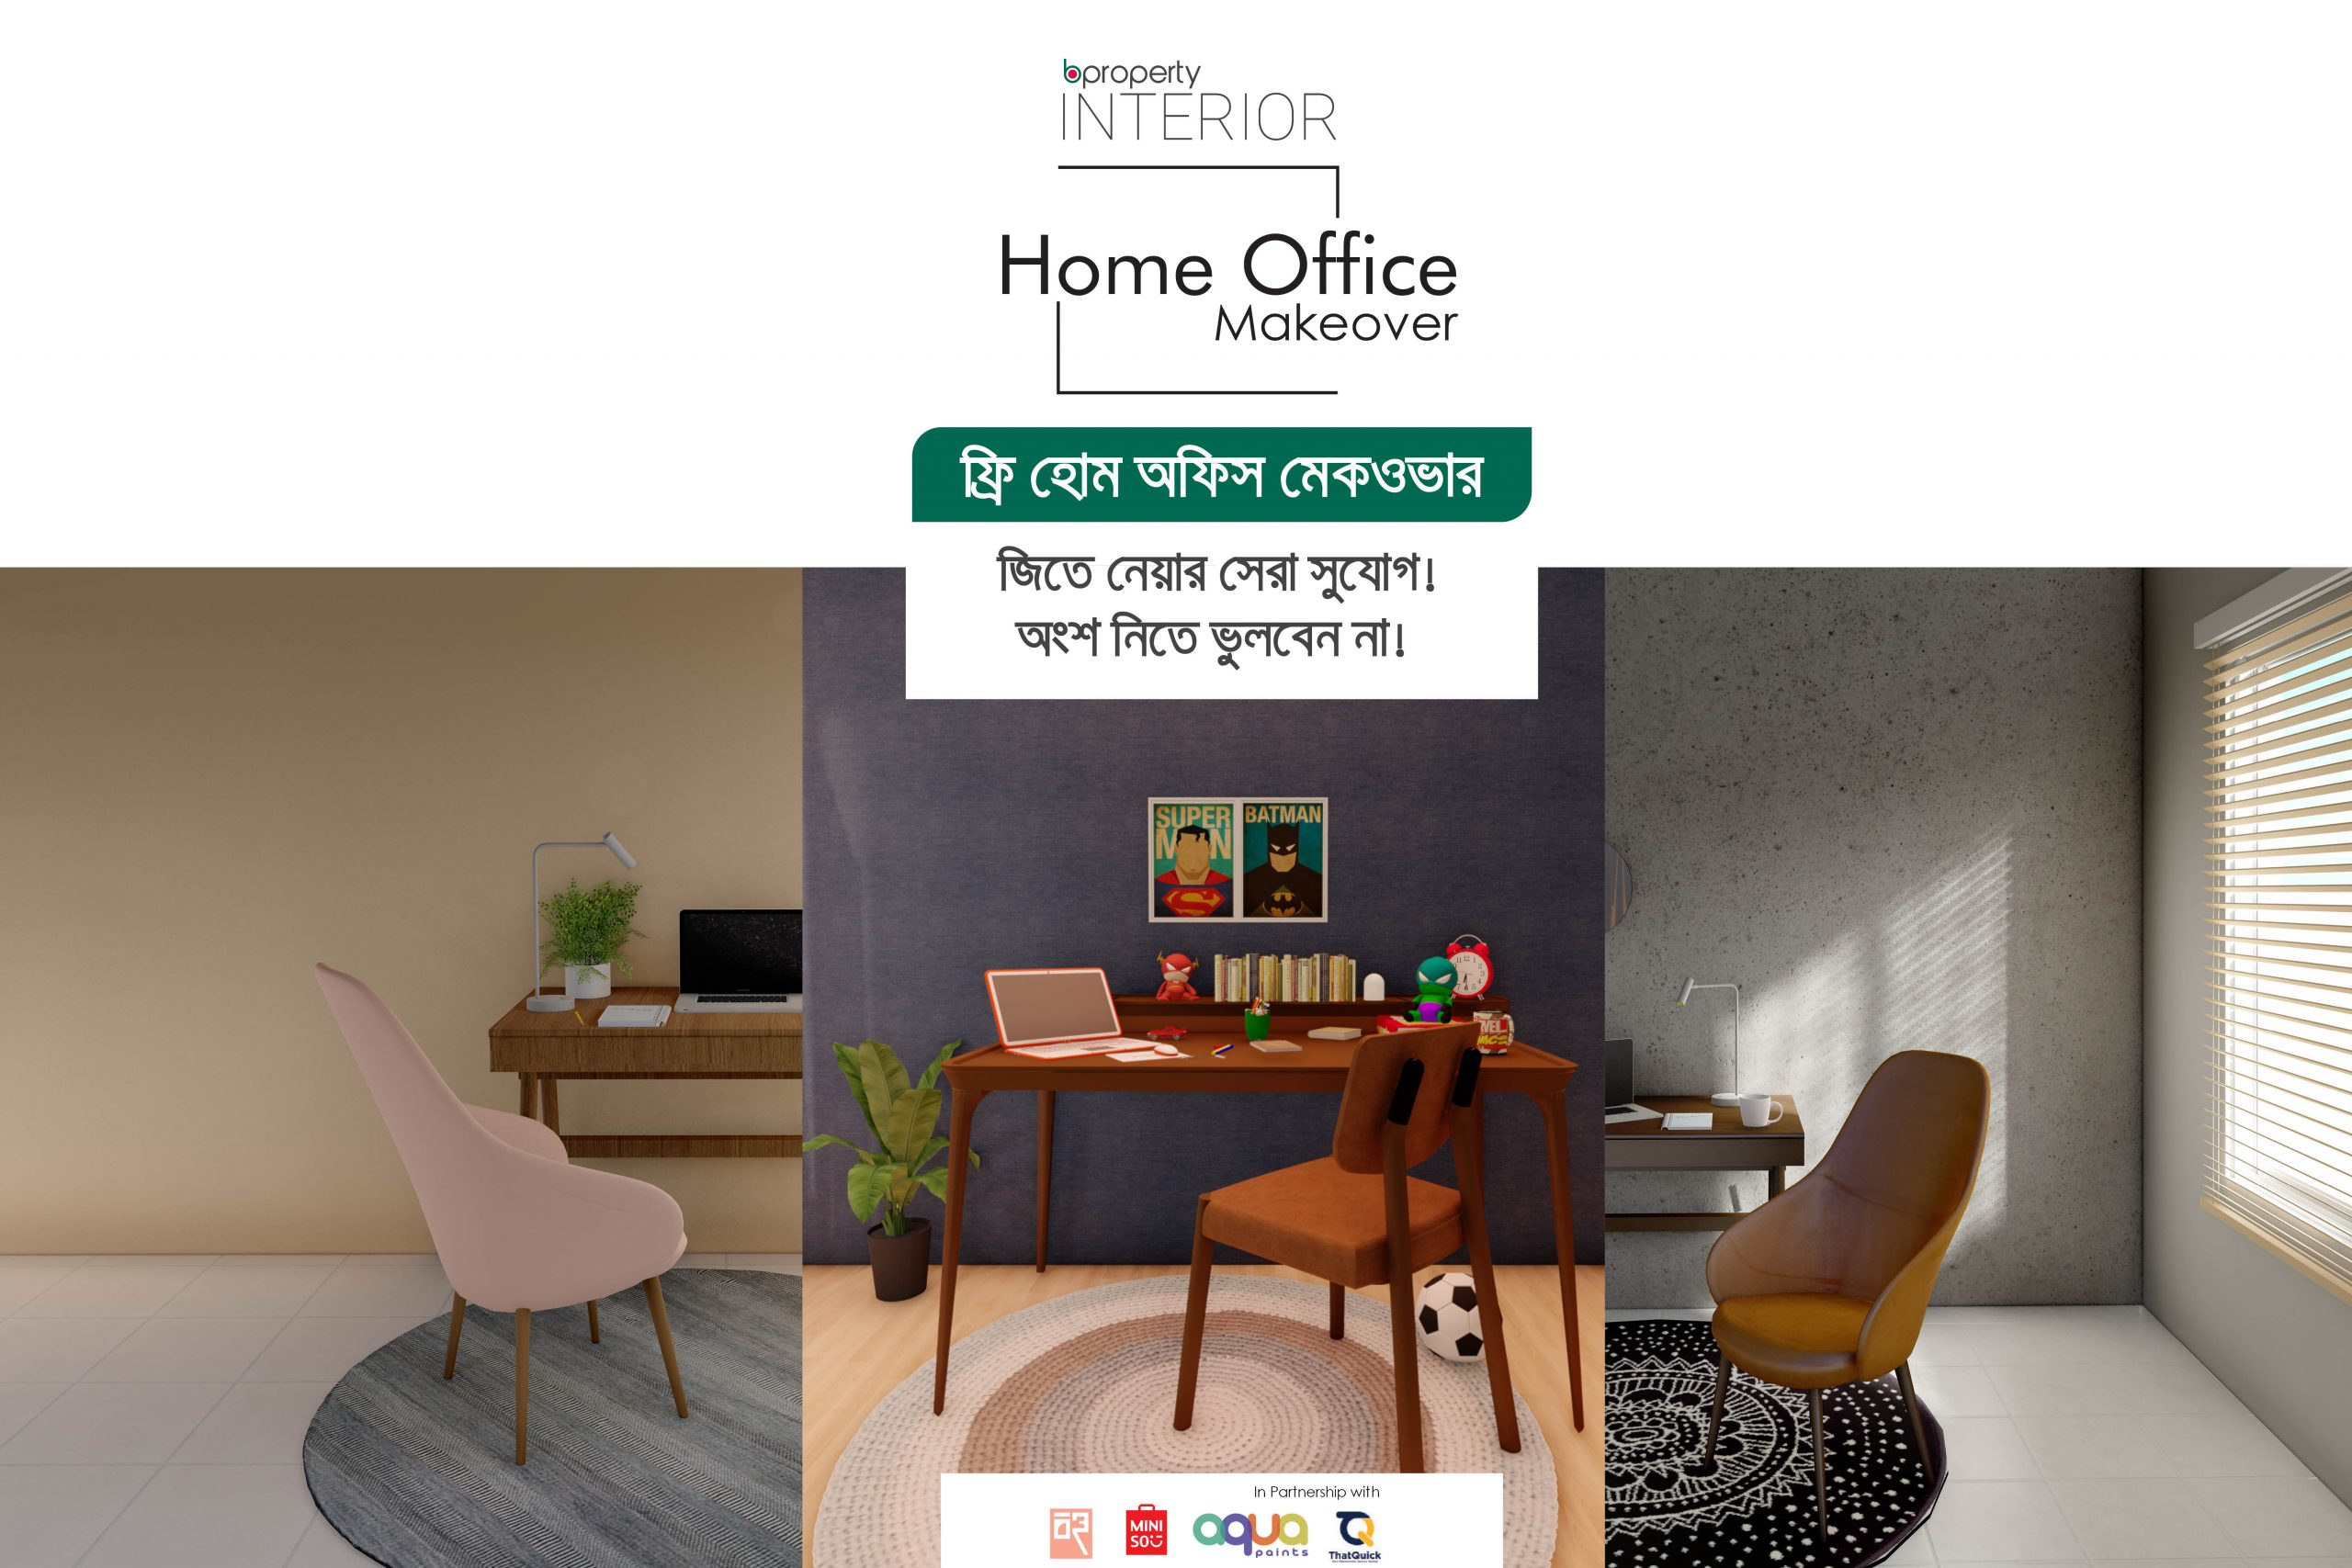 Join the Home Office Makeover Campaign